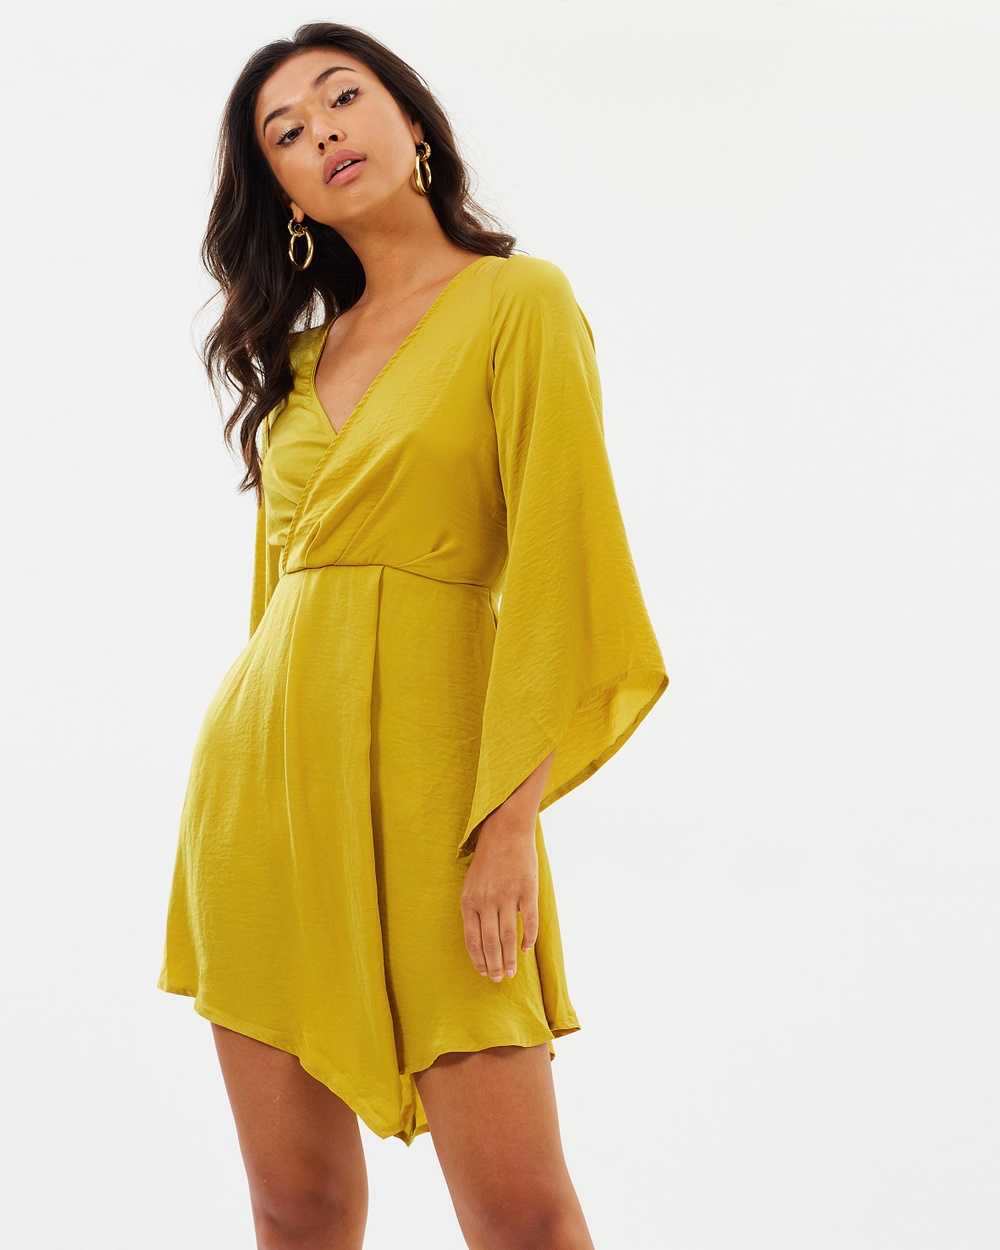 Missguided Satin Plunge Neck Layered Front Long Sleeve Mini Dress Dresses Chartreuse Satin Plunge Neck Layered Front Long Sleeve Mini Dress